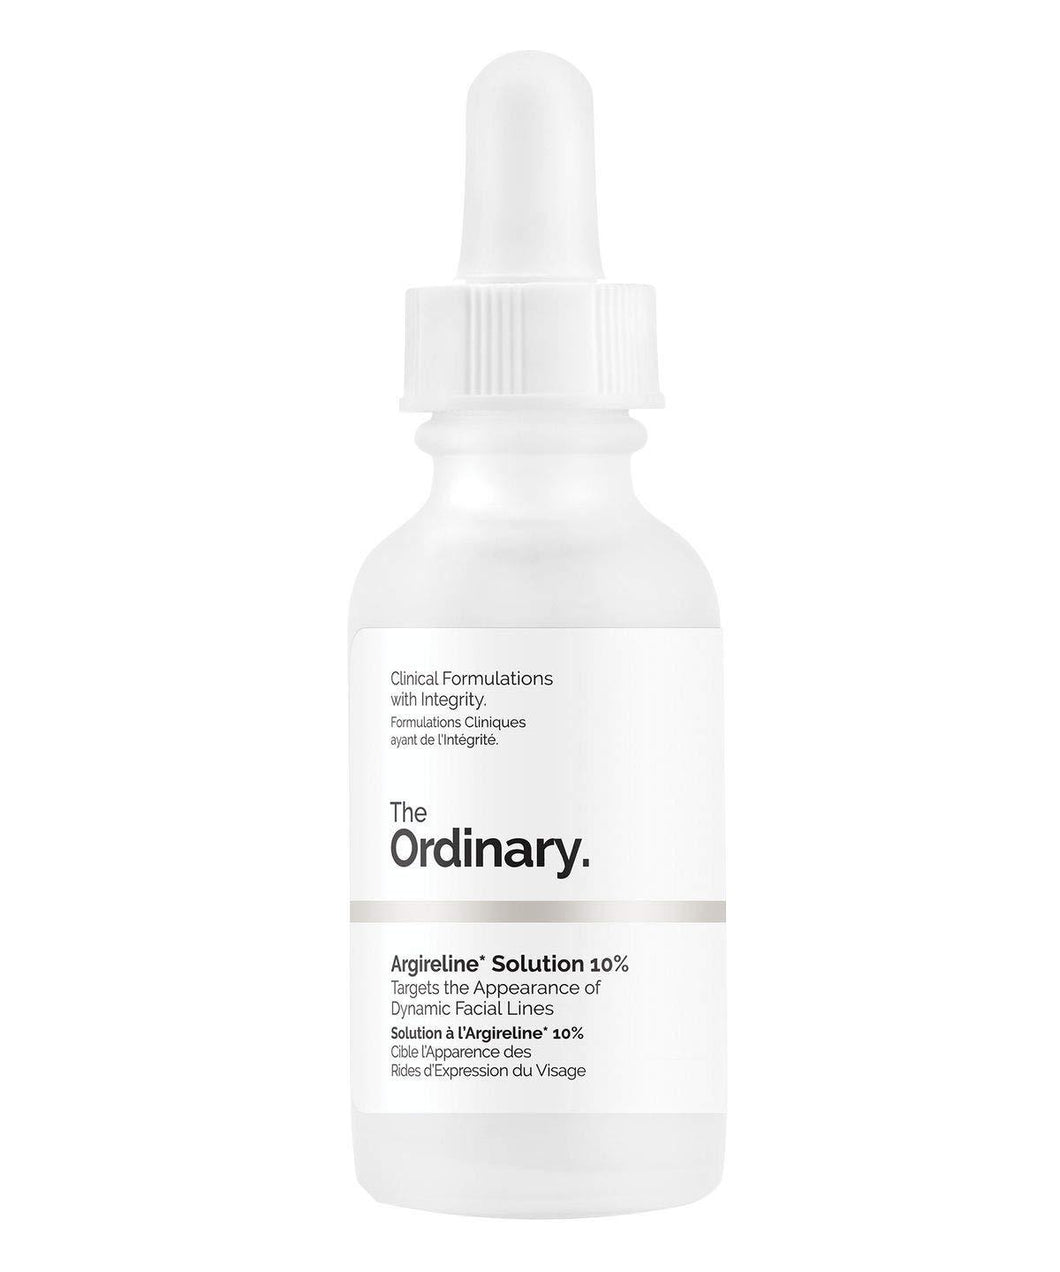 Argireline Solution 10% by The Ordinary in UAE